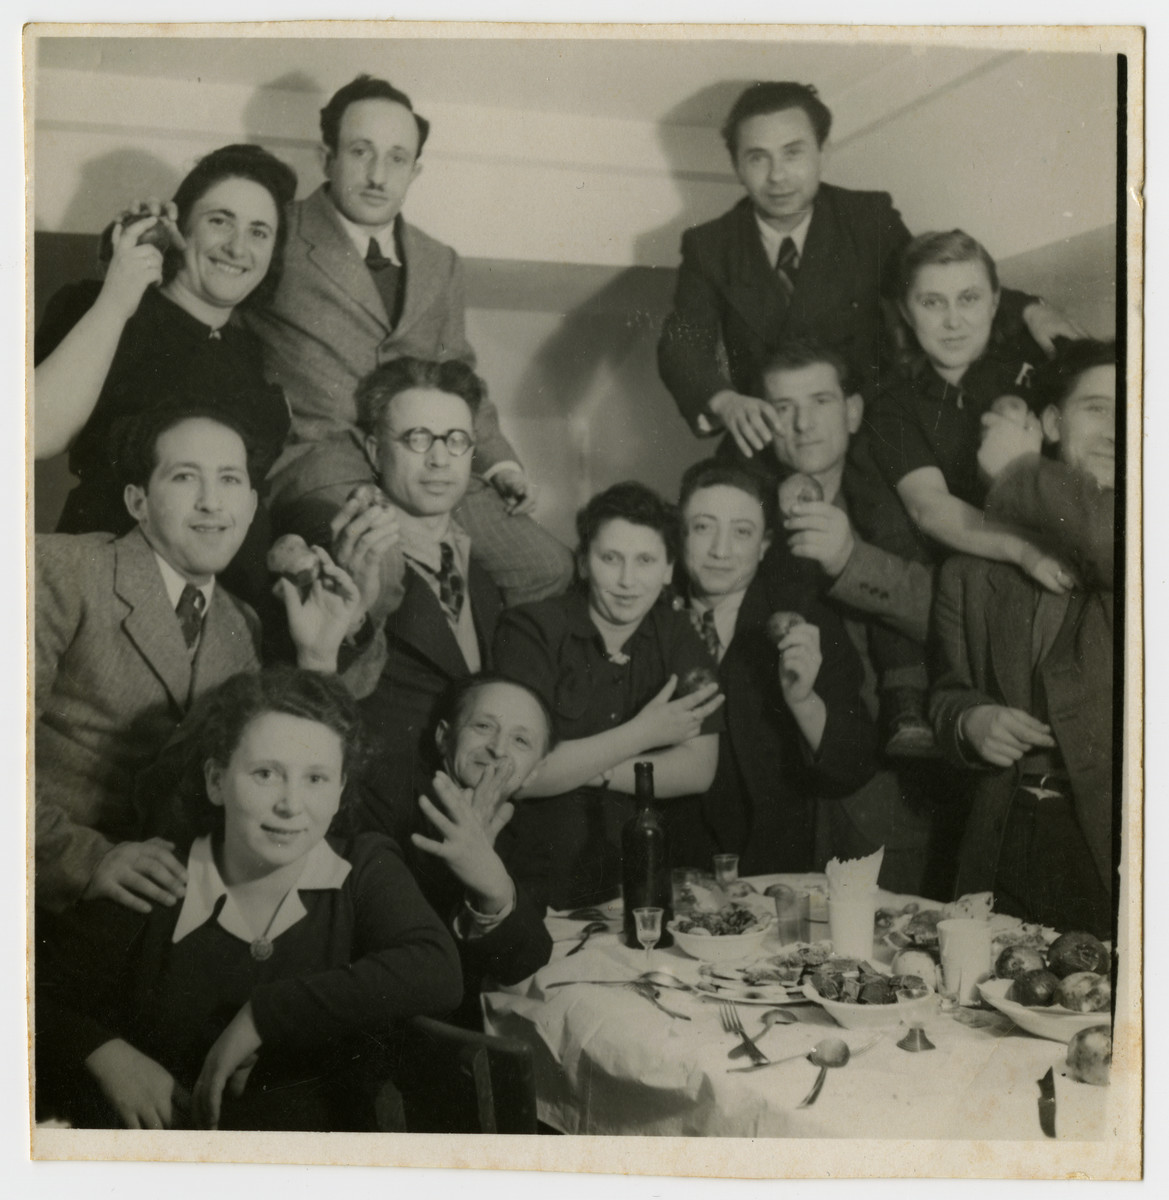 Jewish displaced persons gather for a celebration in Feldafing.  Leib and Jenta Szapiro are pictured on the far left.